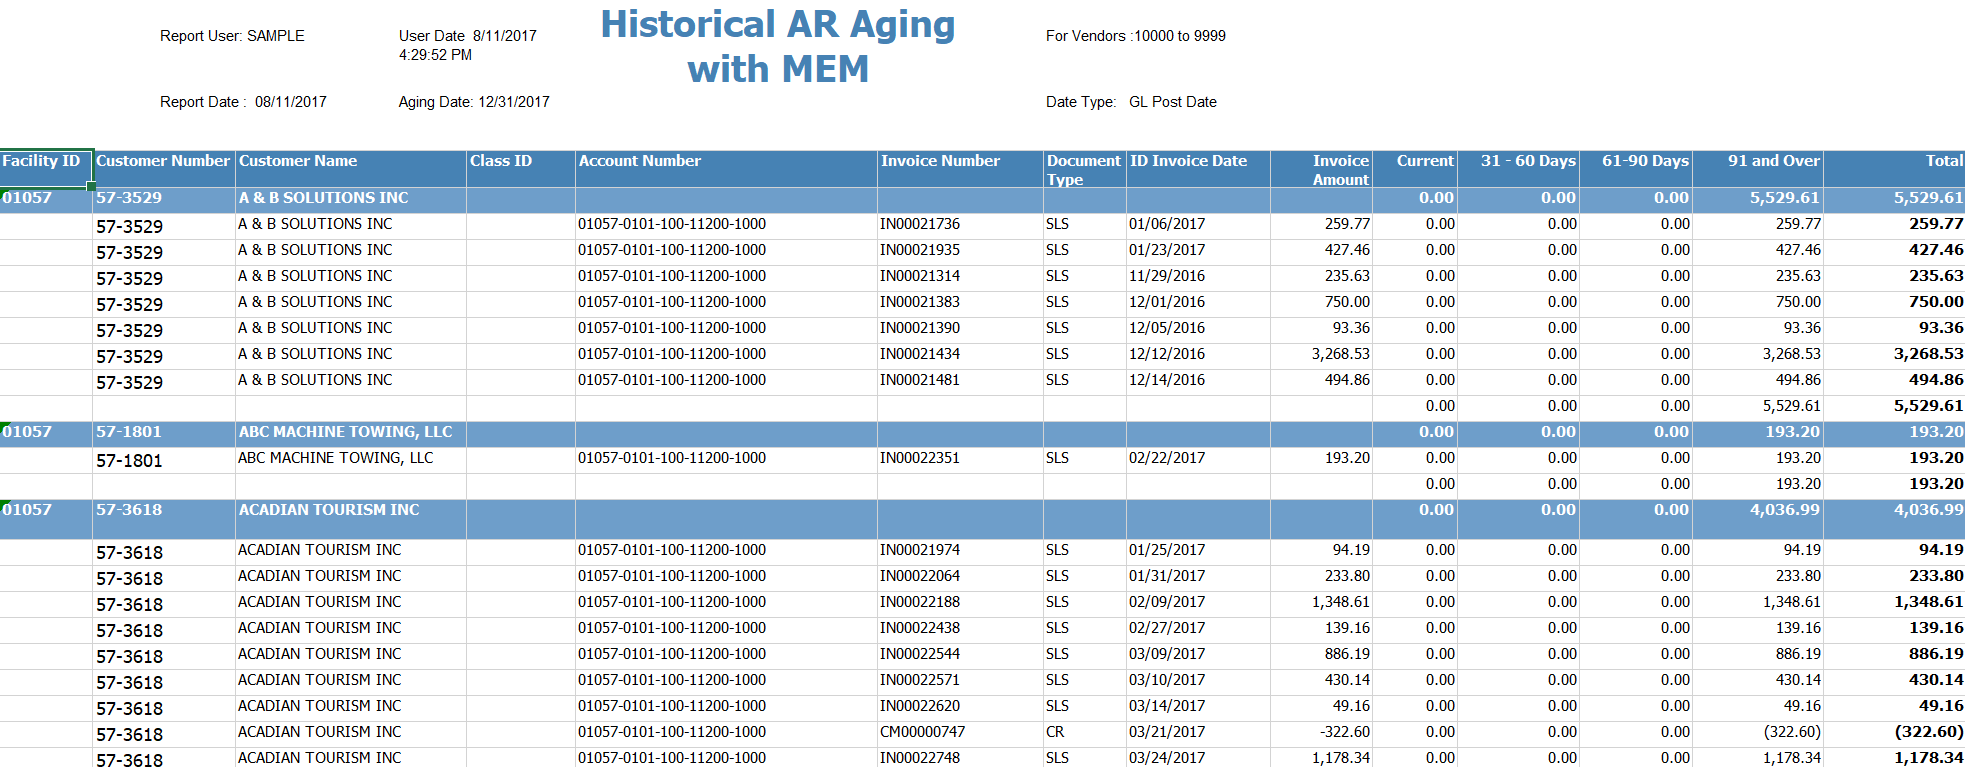 Figure 2 - Historical AR Aging with MEM